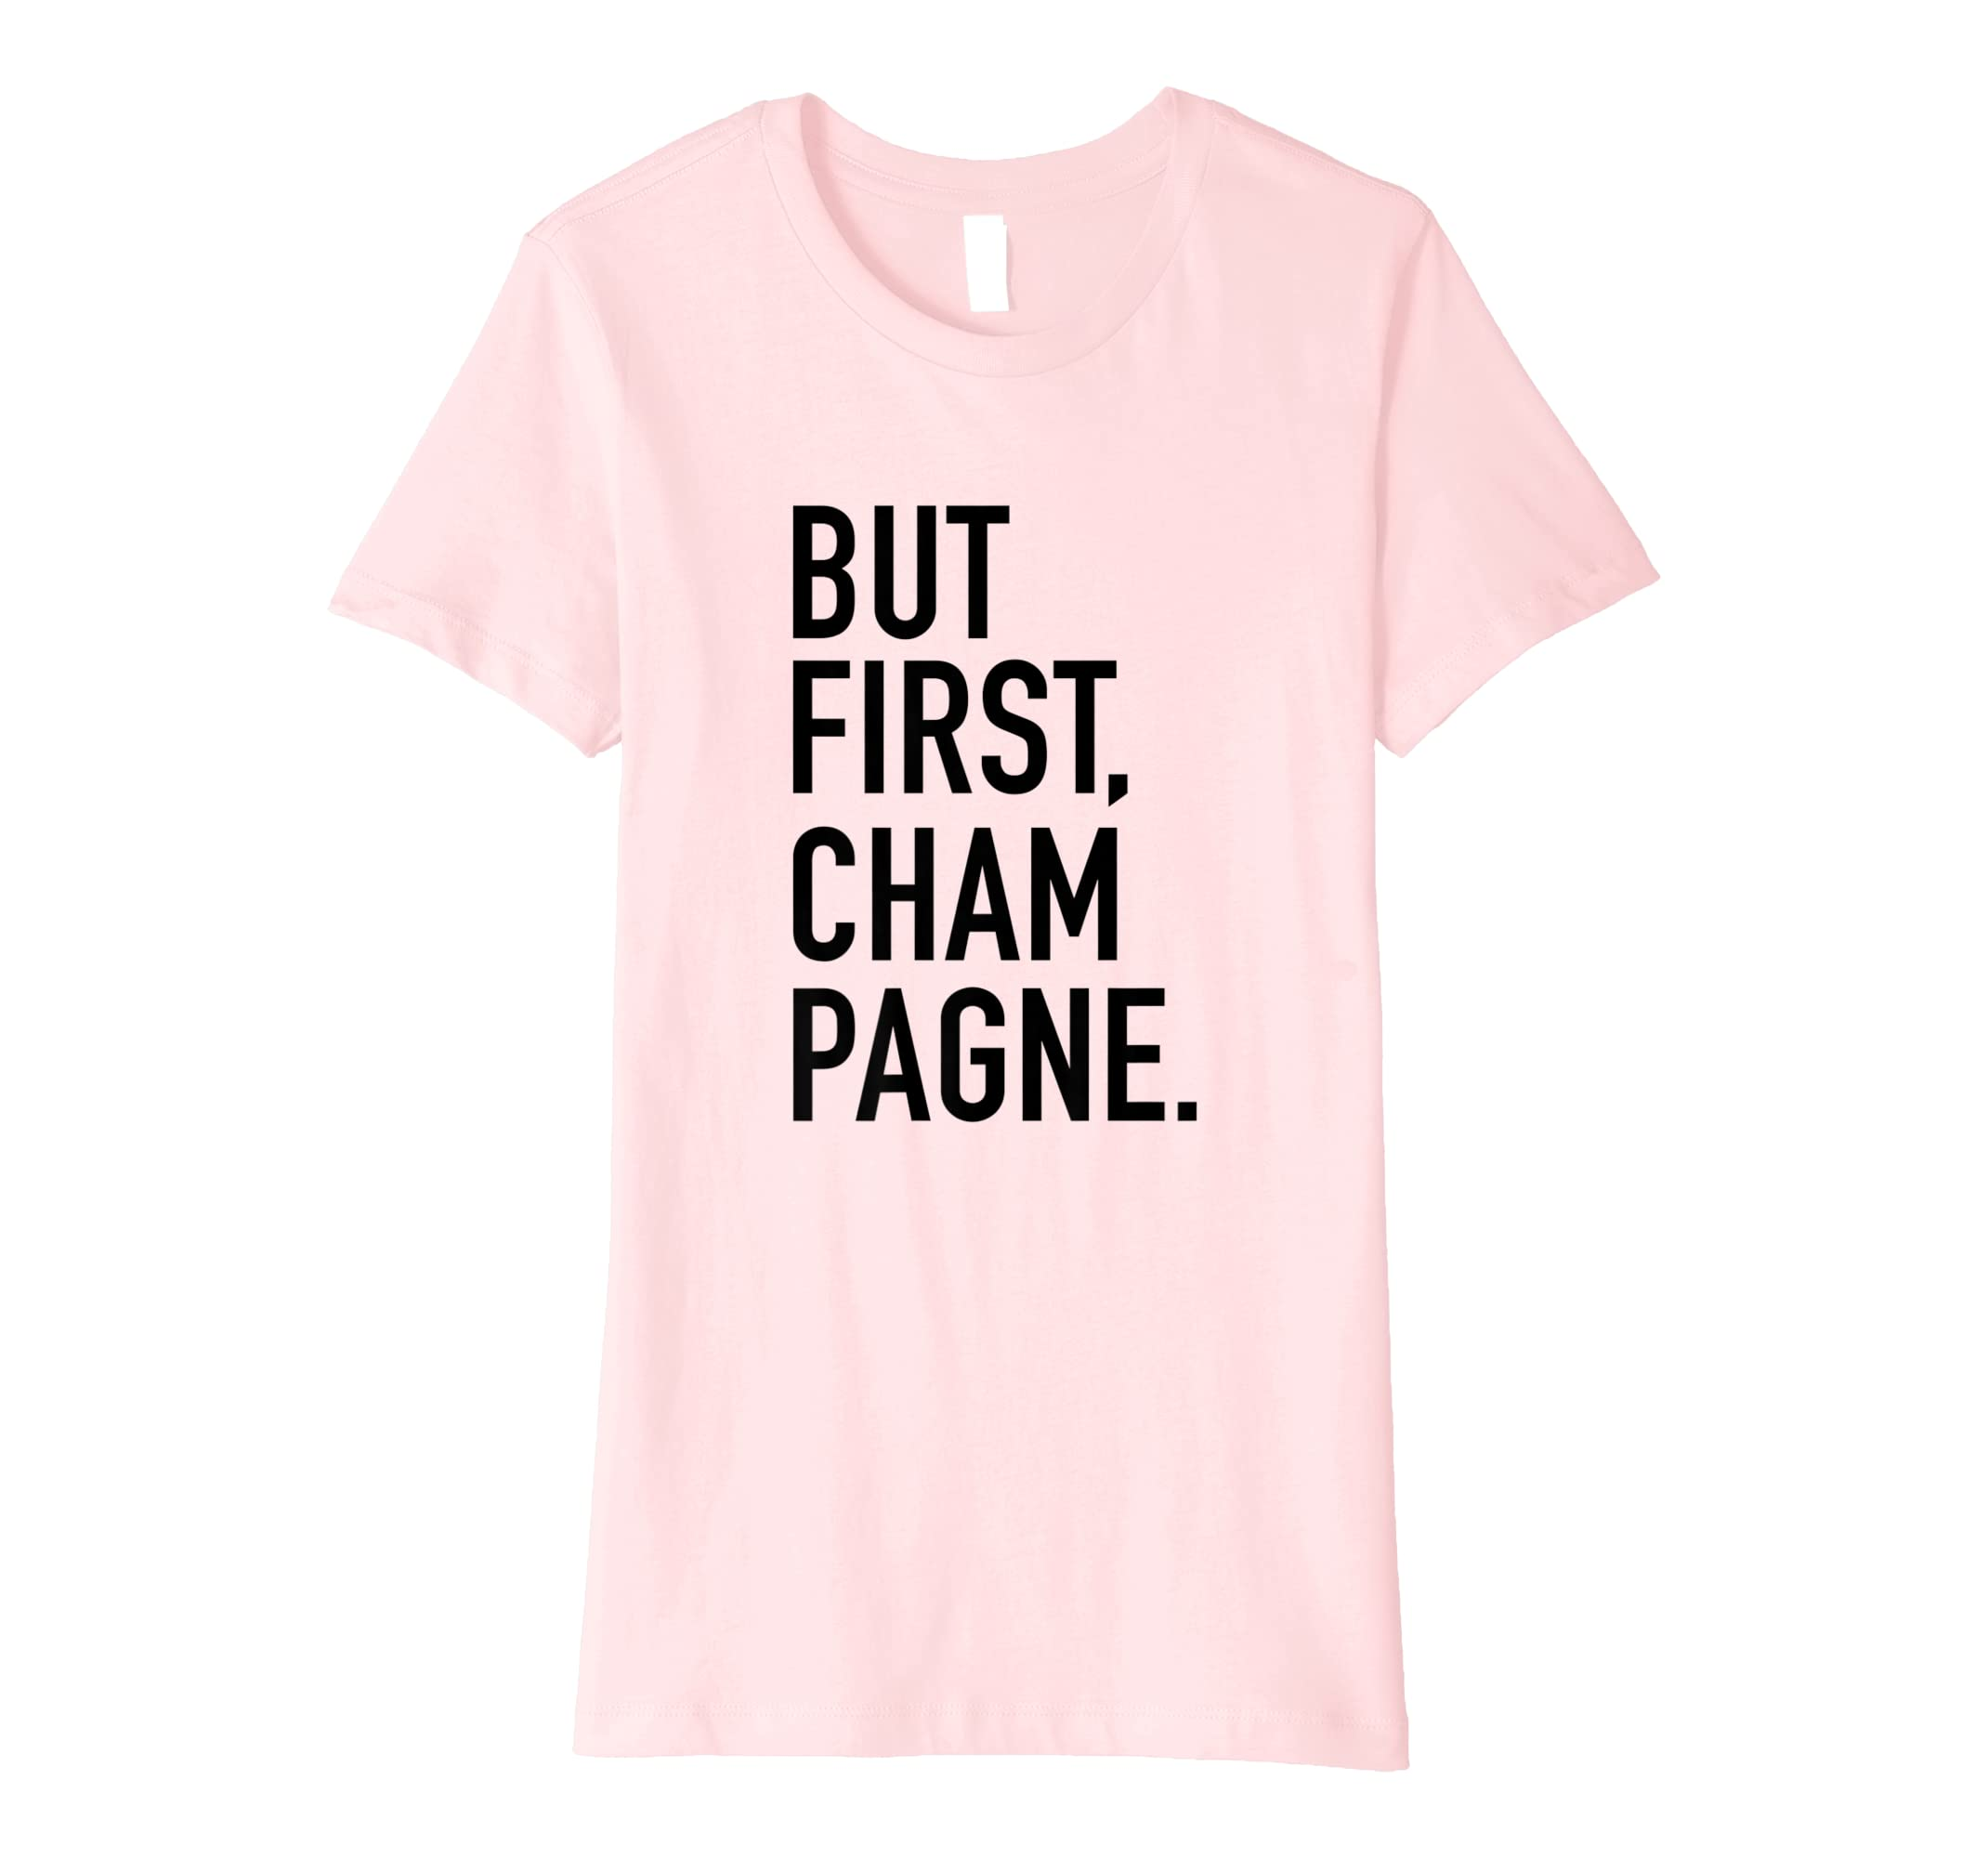 7992ceaad Amazon.com: But First Champagne - Funny Drinking Team Slogan T-Shirt:  Clothing